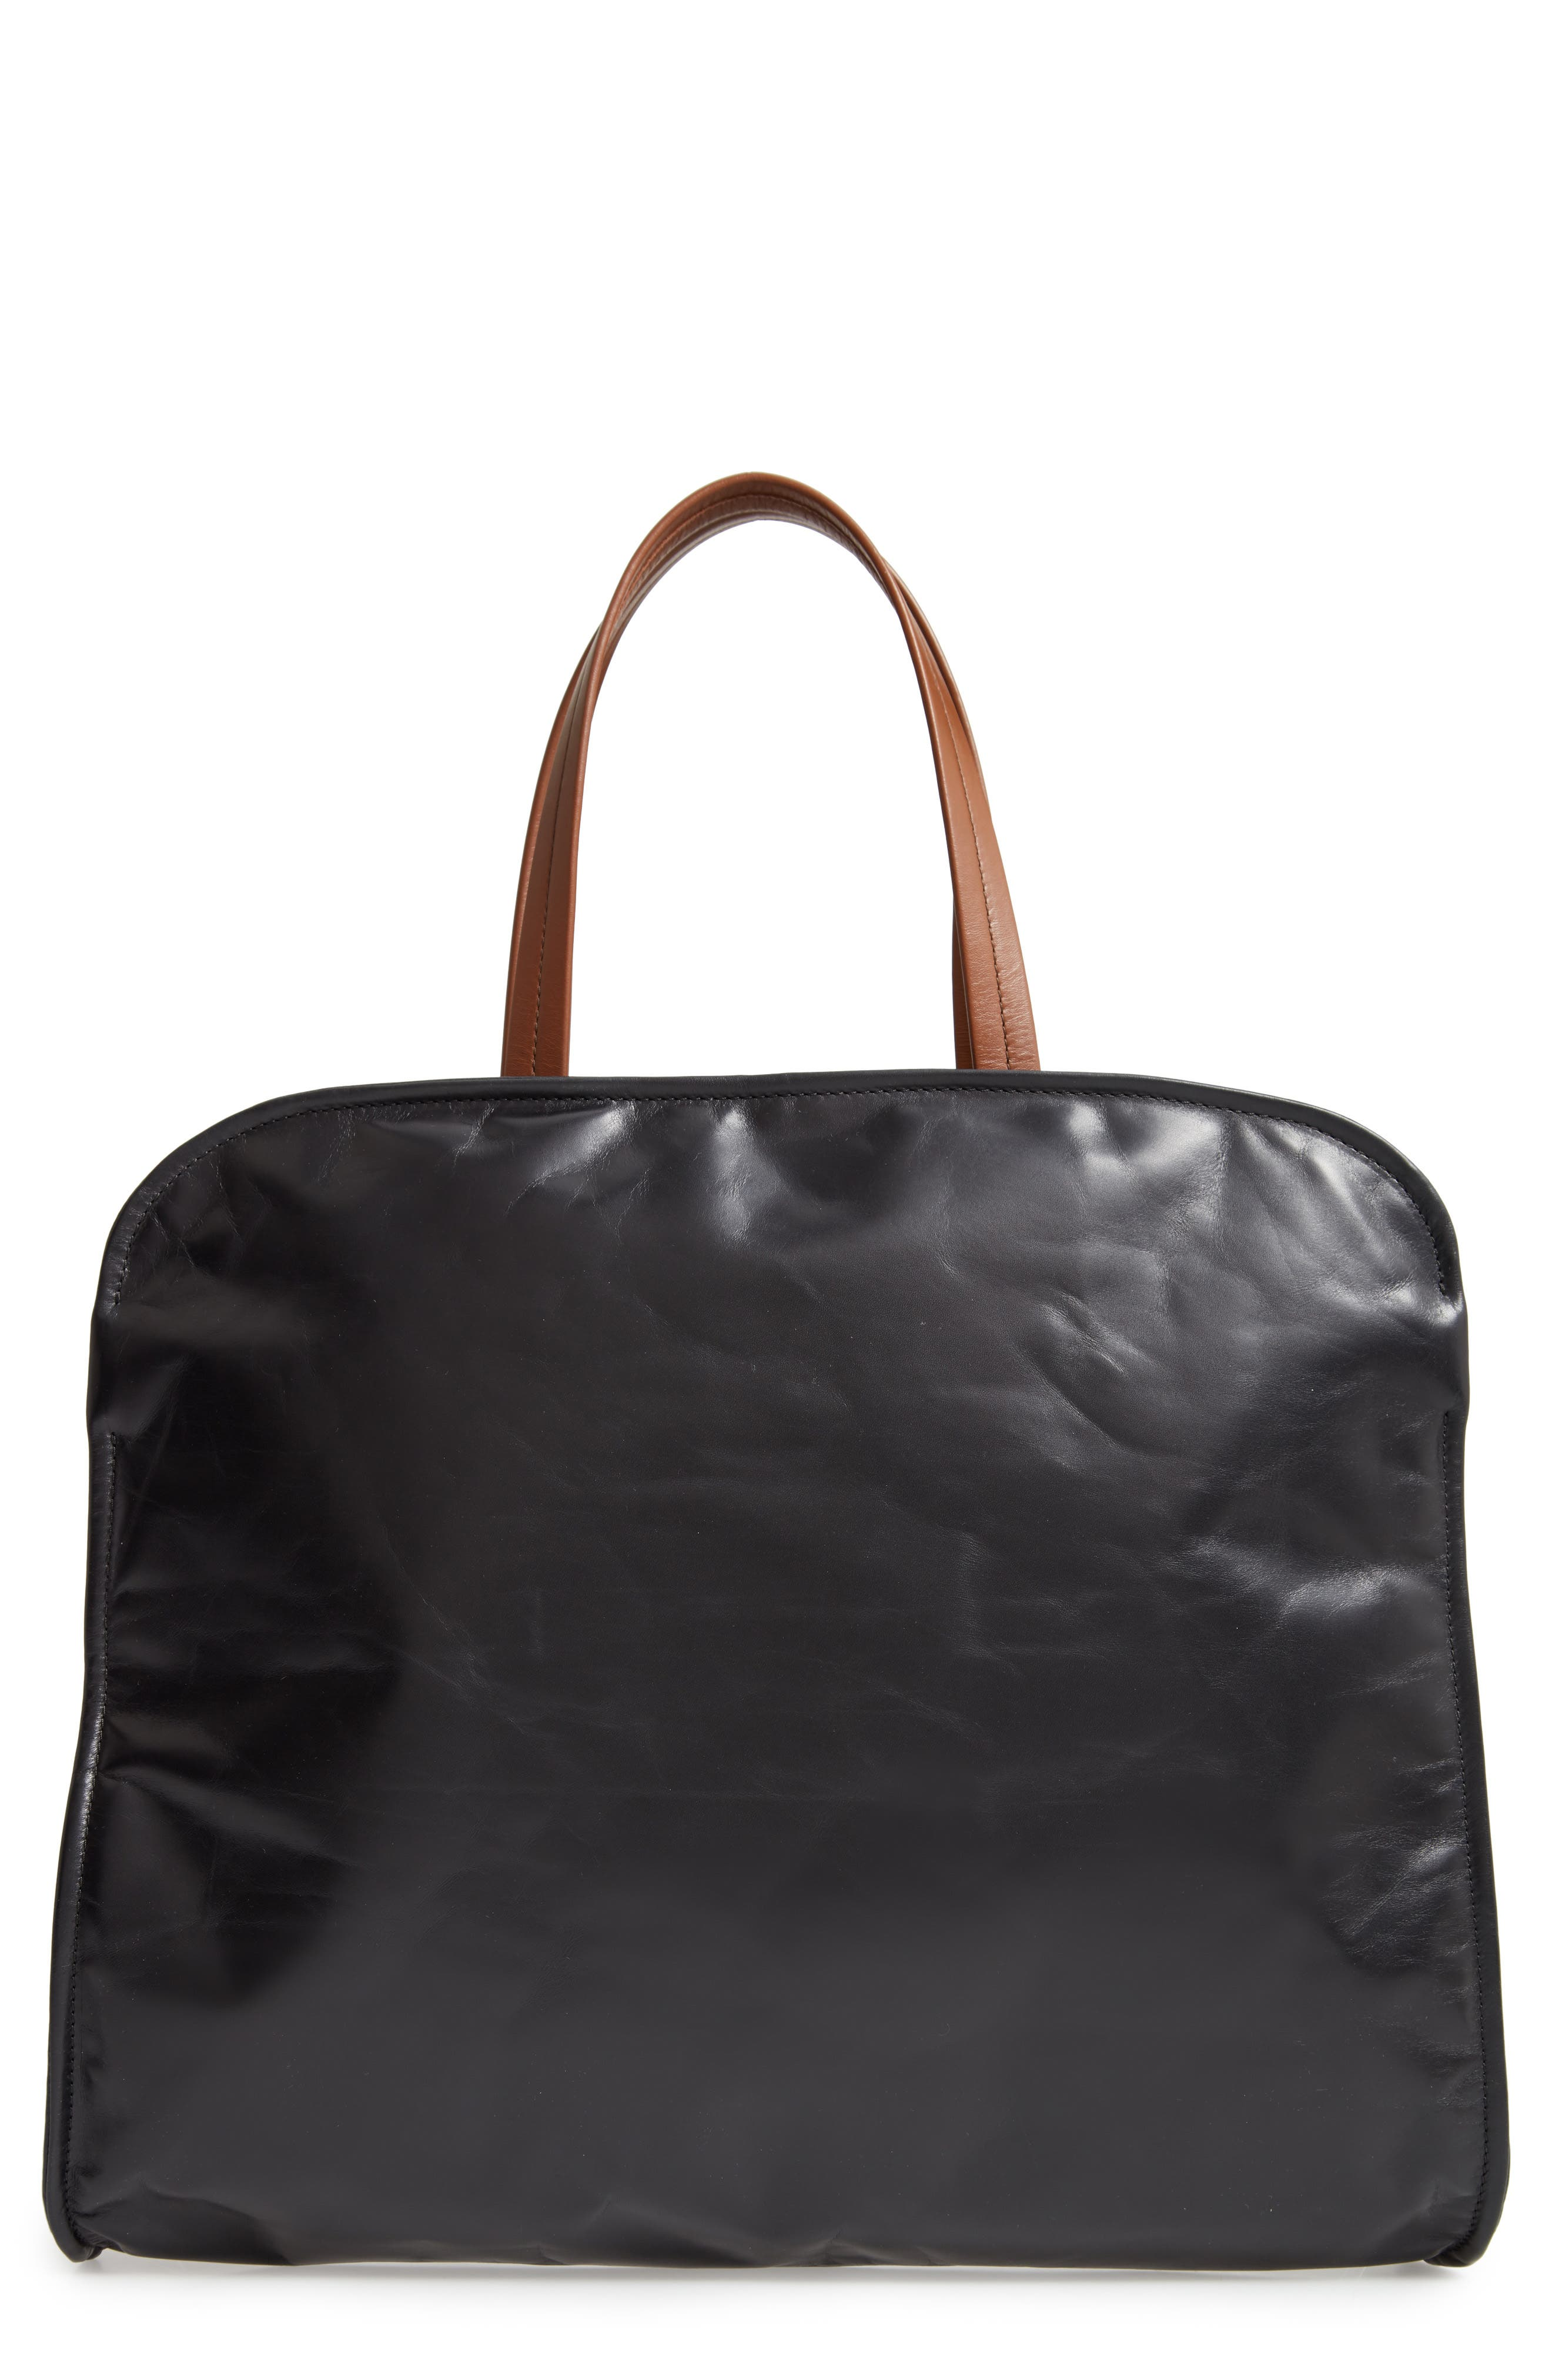 Cushion Leather Tote,                             Main thumbnail 1, color,                             BLACK/ MAROON